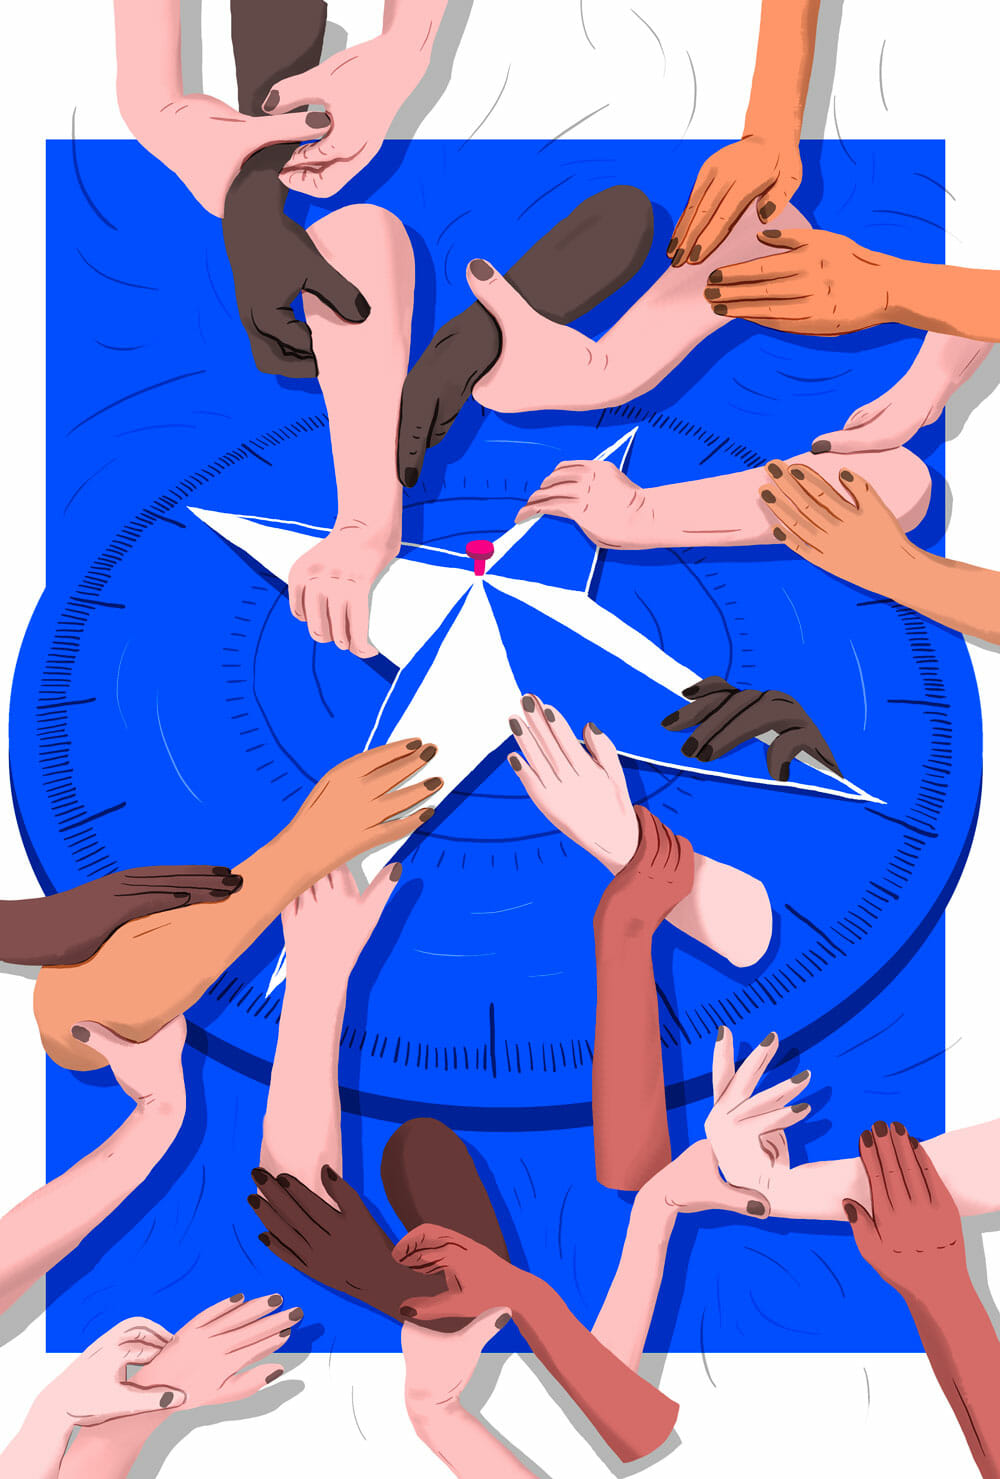 A diverse group of disembodied forearms hold each other as they cling to the cardinal directions on a compass.